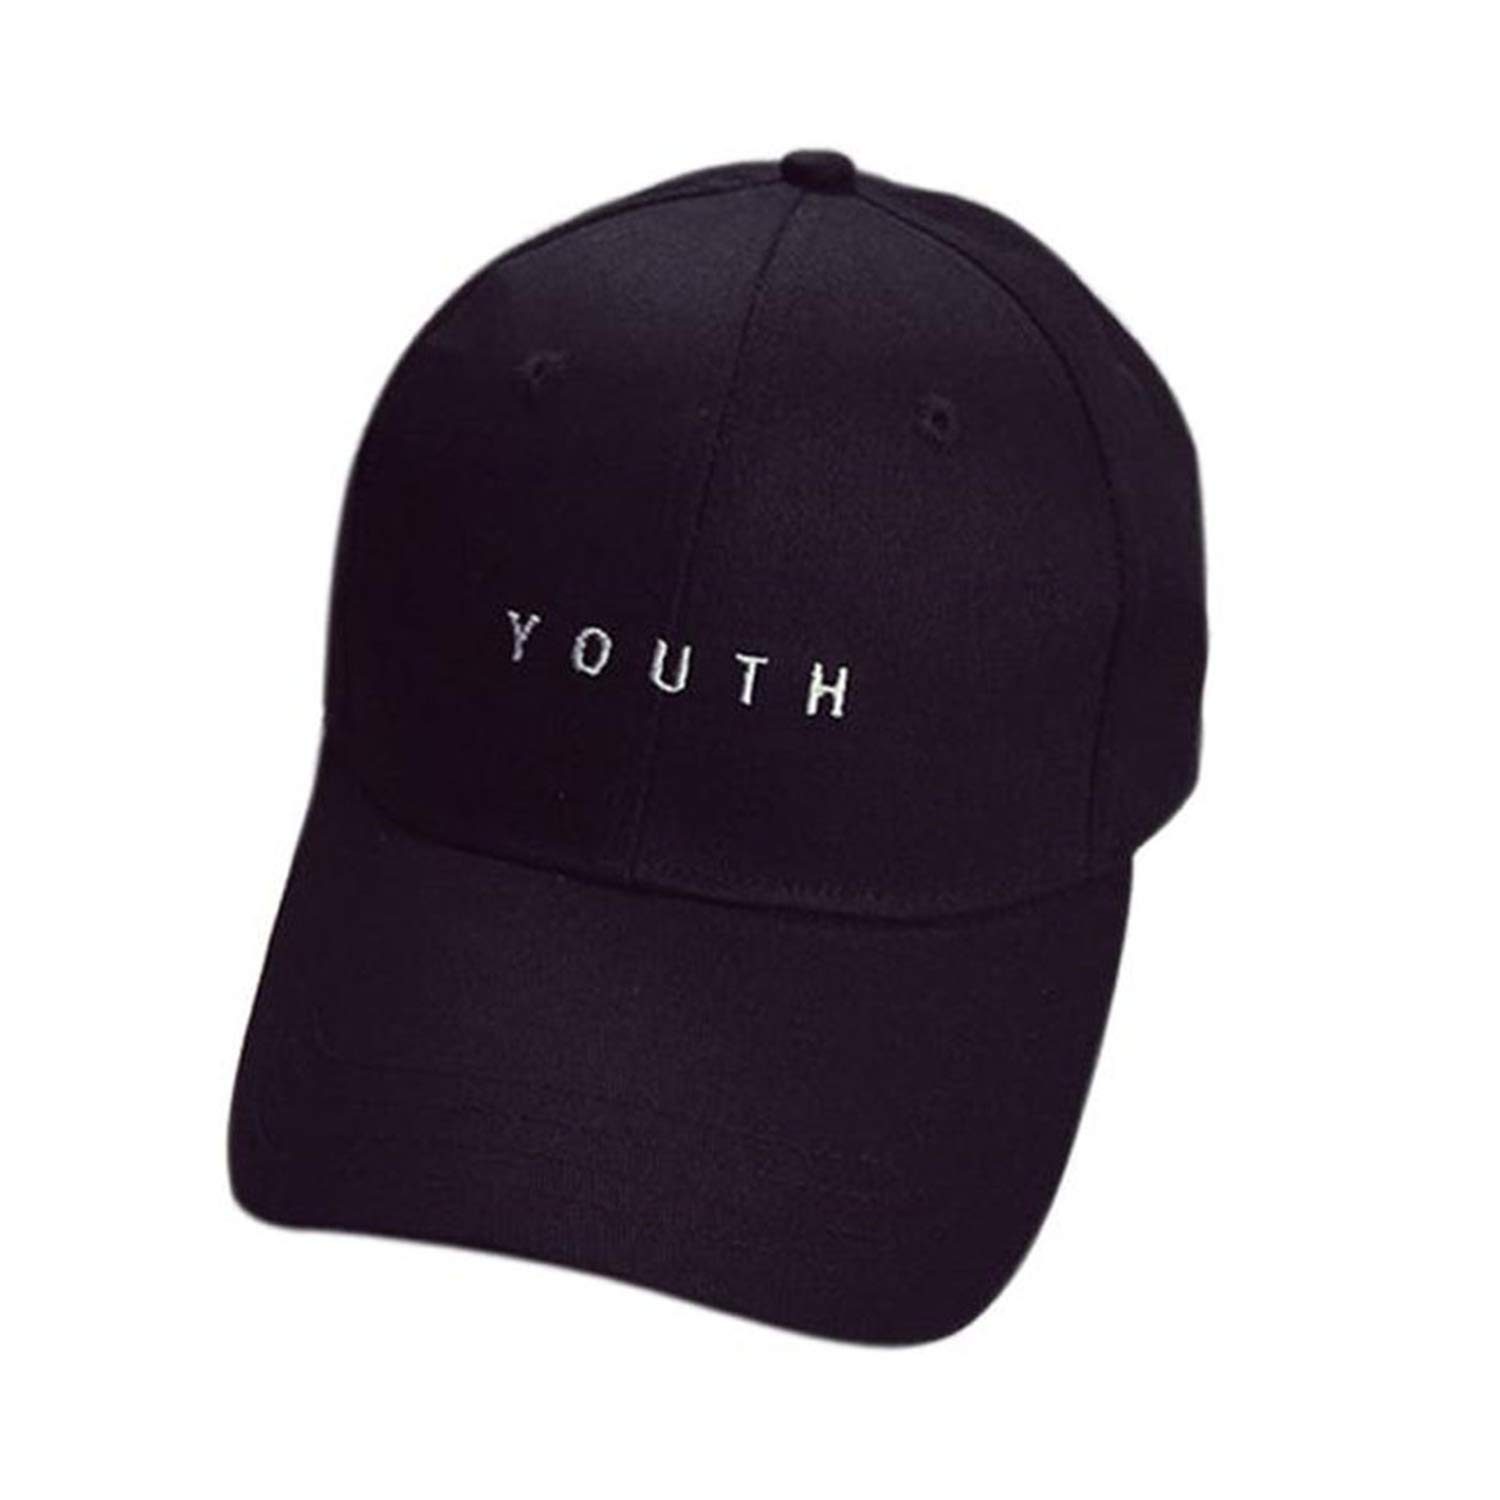 new york f8c57 57c8f Amazon.com  Ron Kite Caps Youth Baseball Letter Men Woman Adjustable Caps  Casual Hats Solid Color Fashion Snapback Fall Cap  Clothing